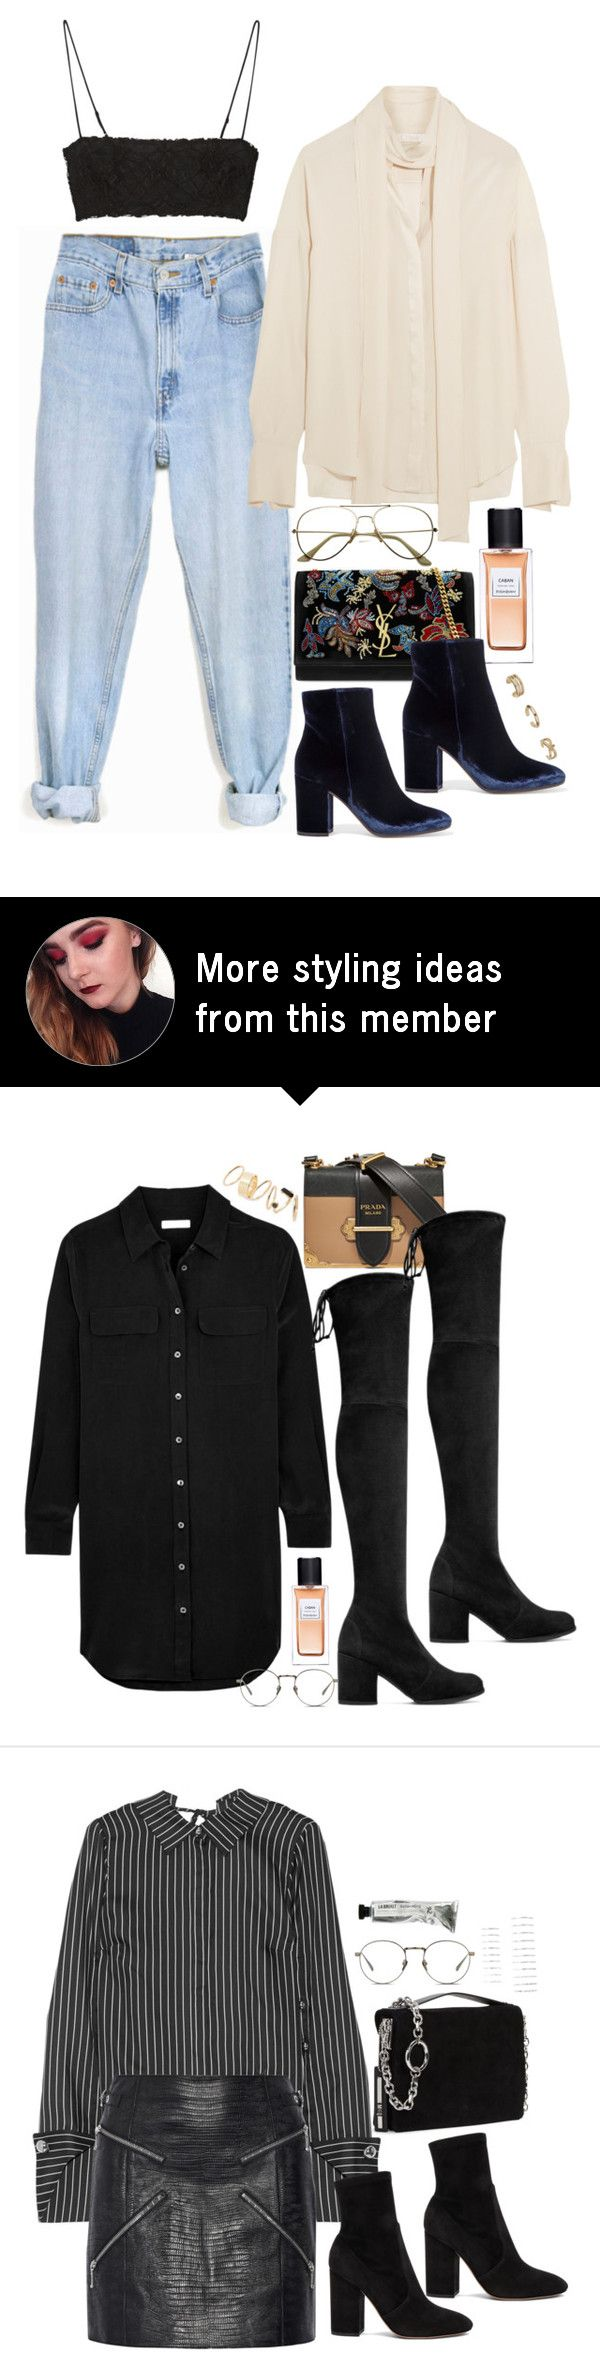 """NYFW Style Inspo"" by samikayy76 on Polyvore featuring Levi's, Gianvito Rossi, Yves Saint Laurent, Topshop, Alexander McQueen and ADAM"